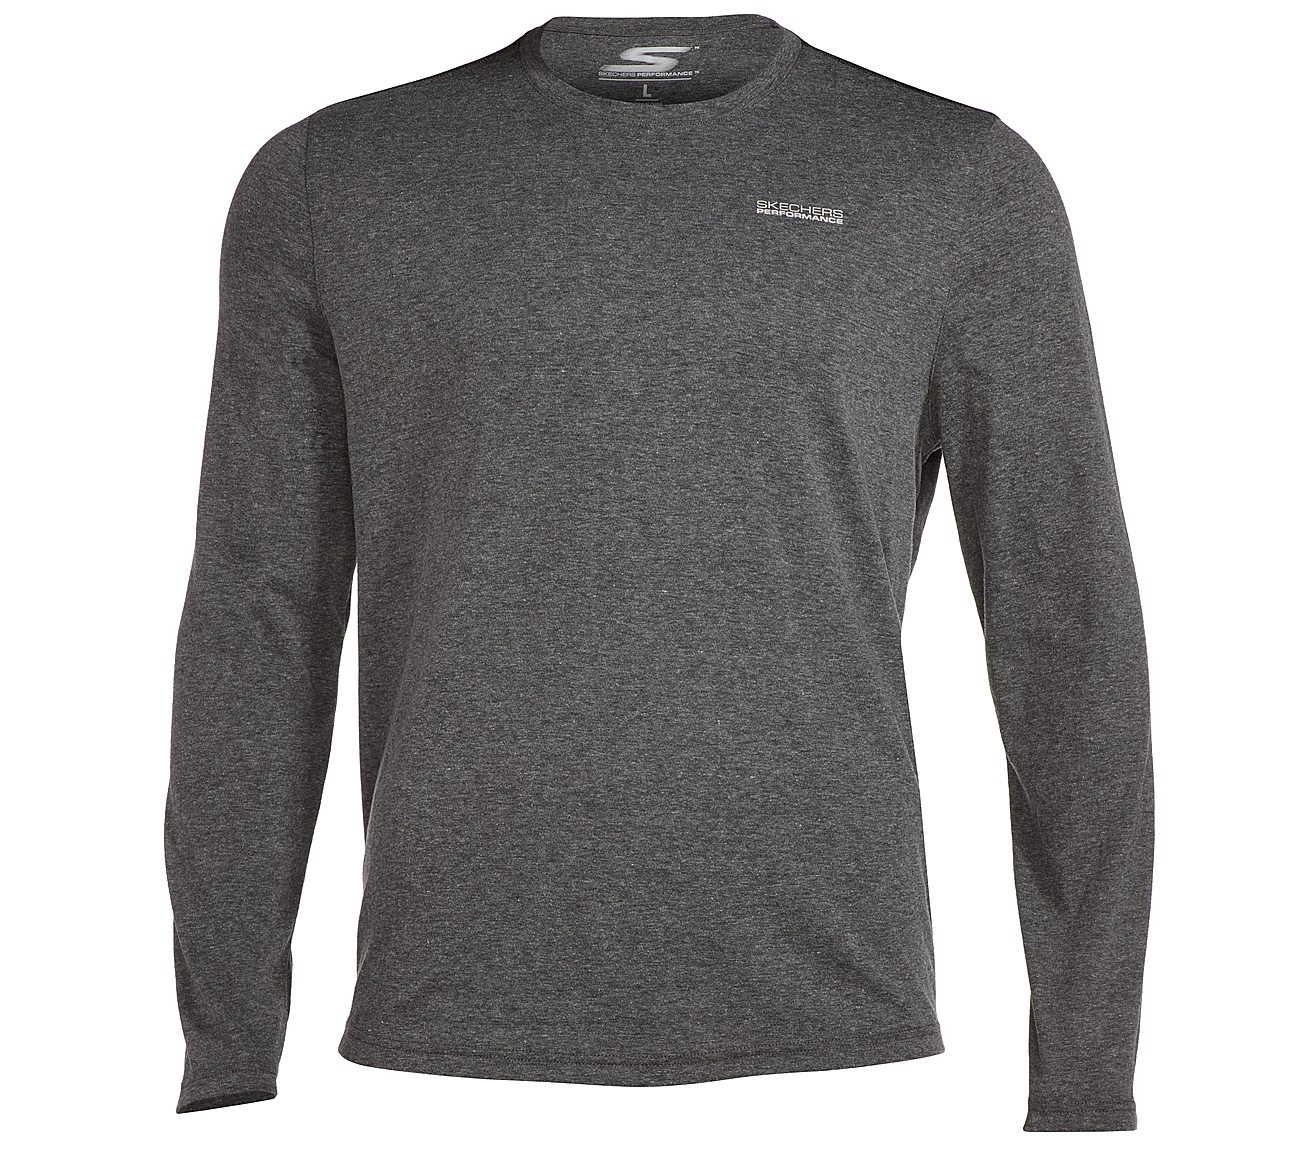 Buy Skechers Falls Long Sleeve Tee Shirt Apparel Shoes Only 1450